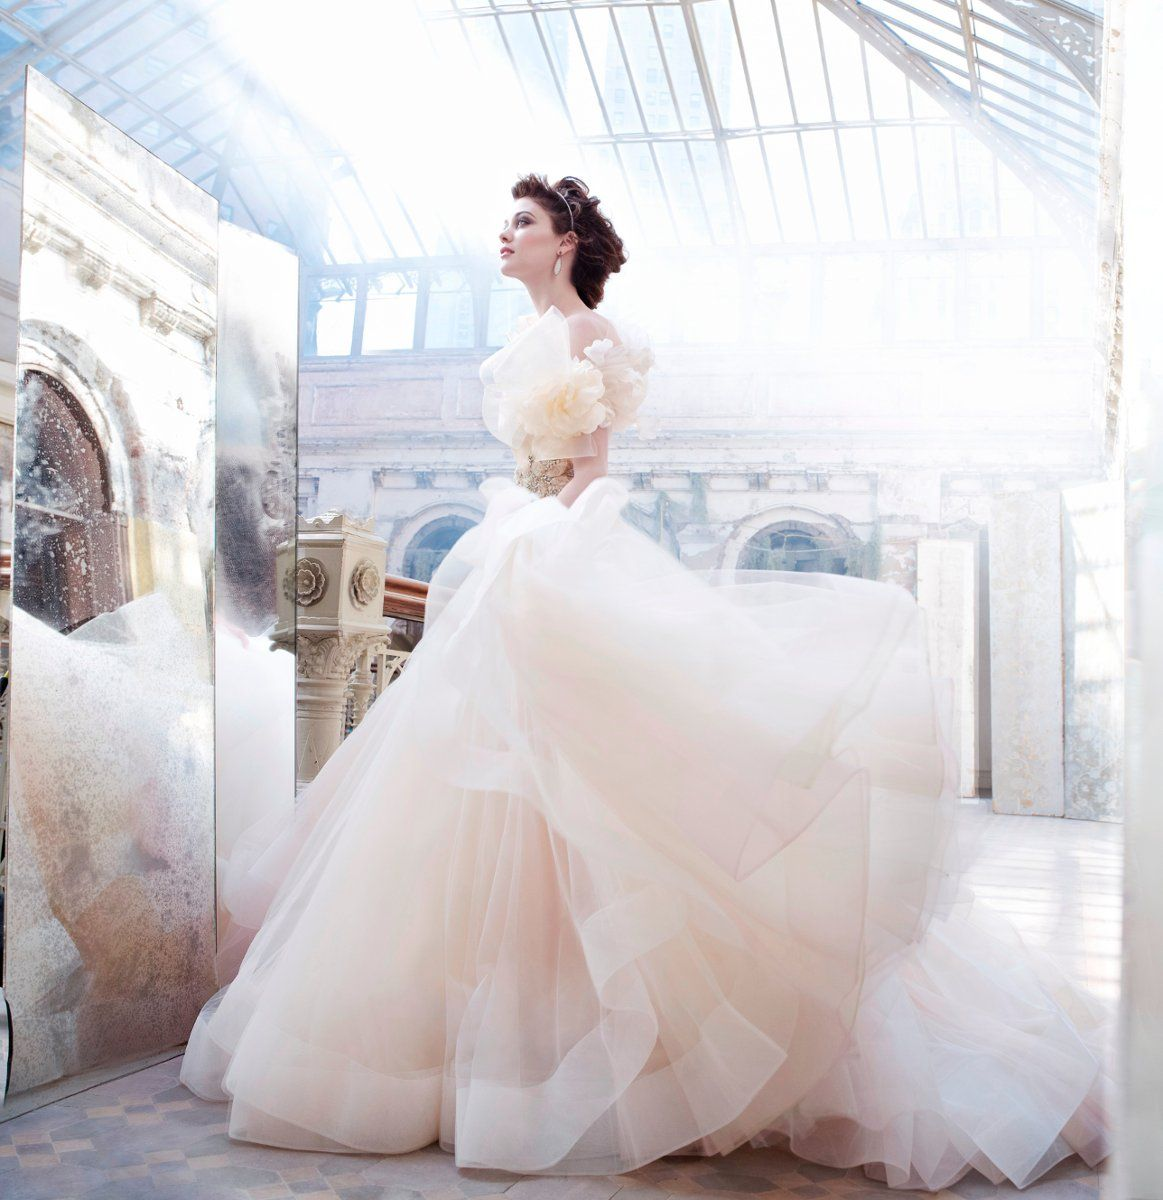 A-Line: Marvelous Lazaro Wedding Dresses Silhouette Collection ...